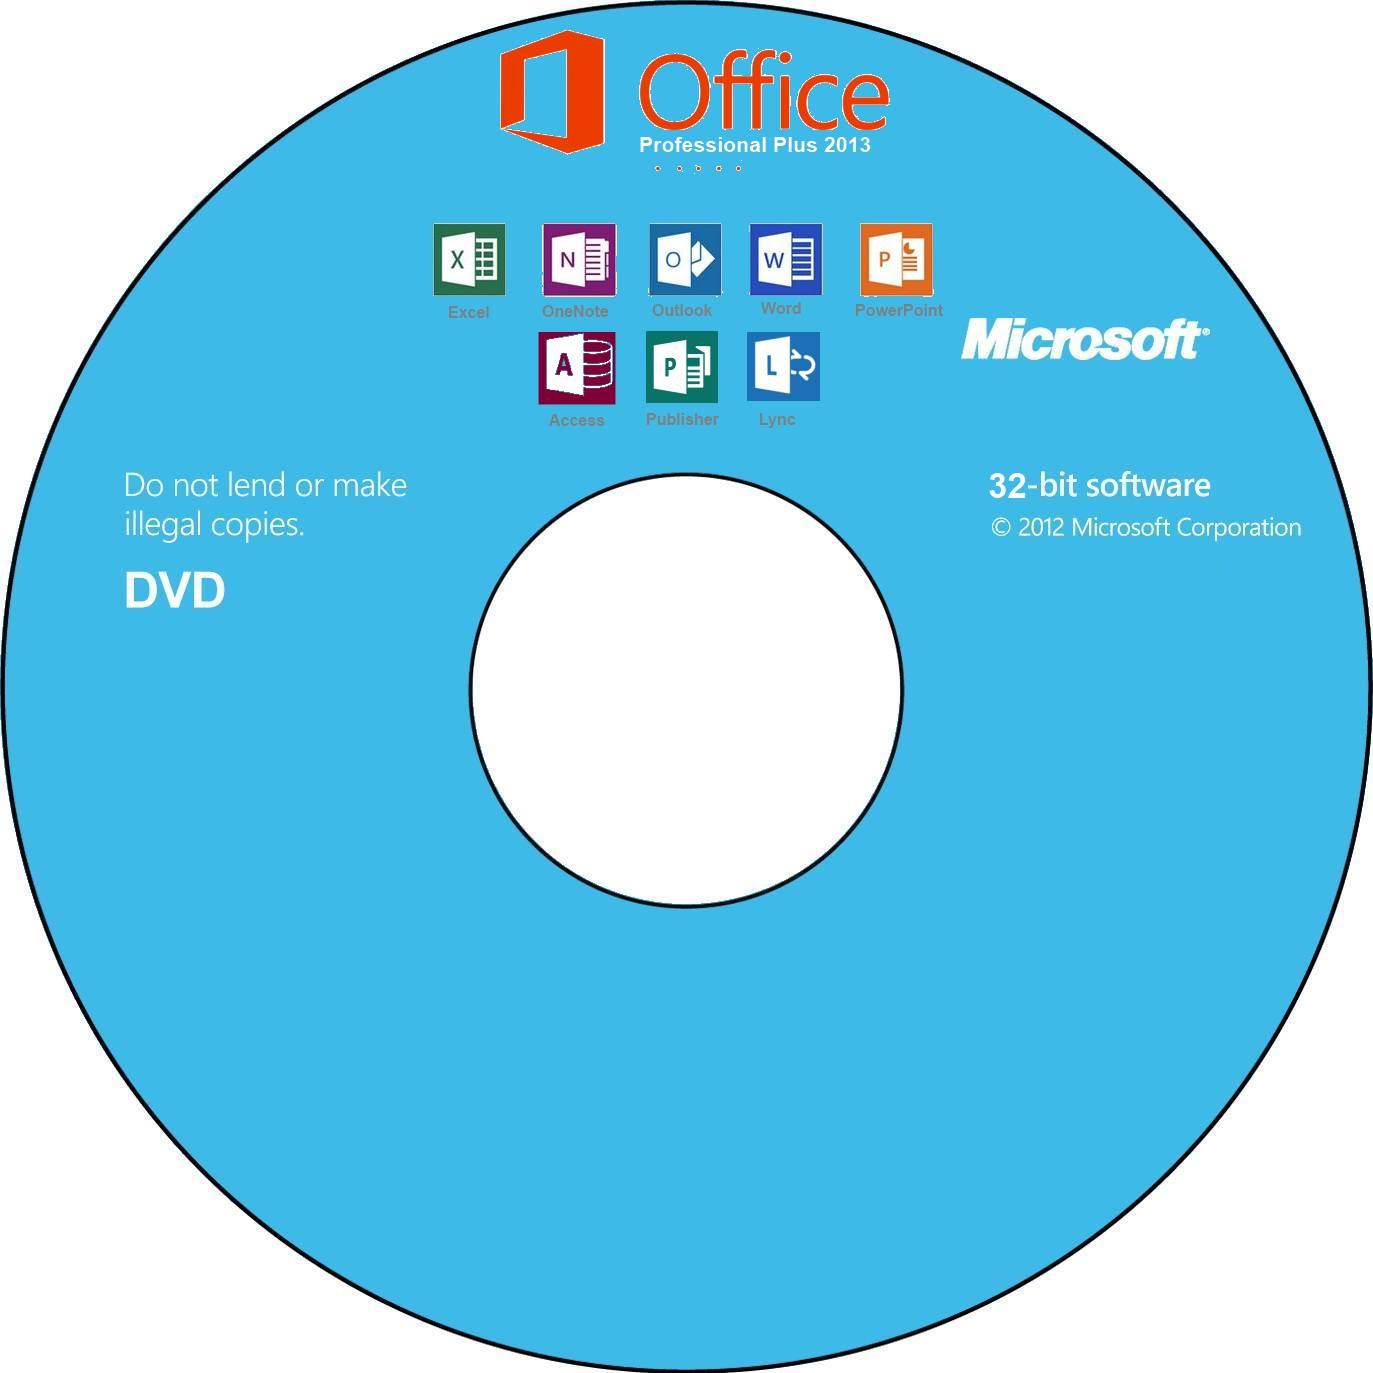 14 Floppy Disk Icon Word 2013 Images - Microsoft Office 2013 DVD Cover ...